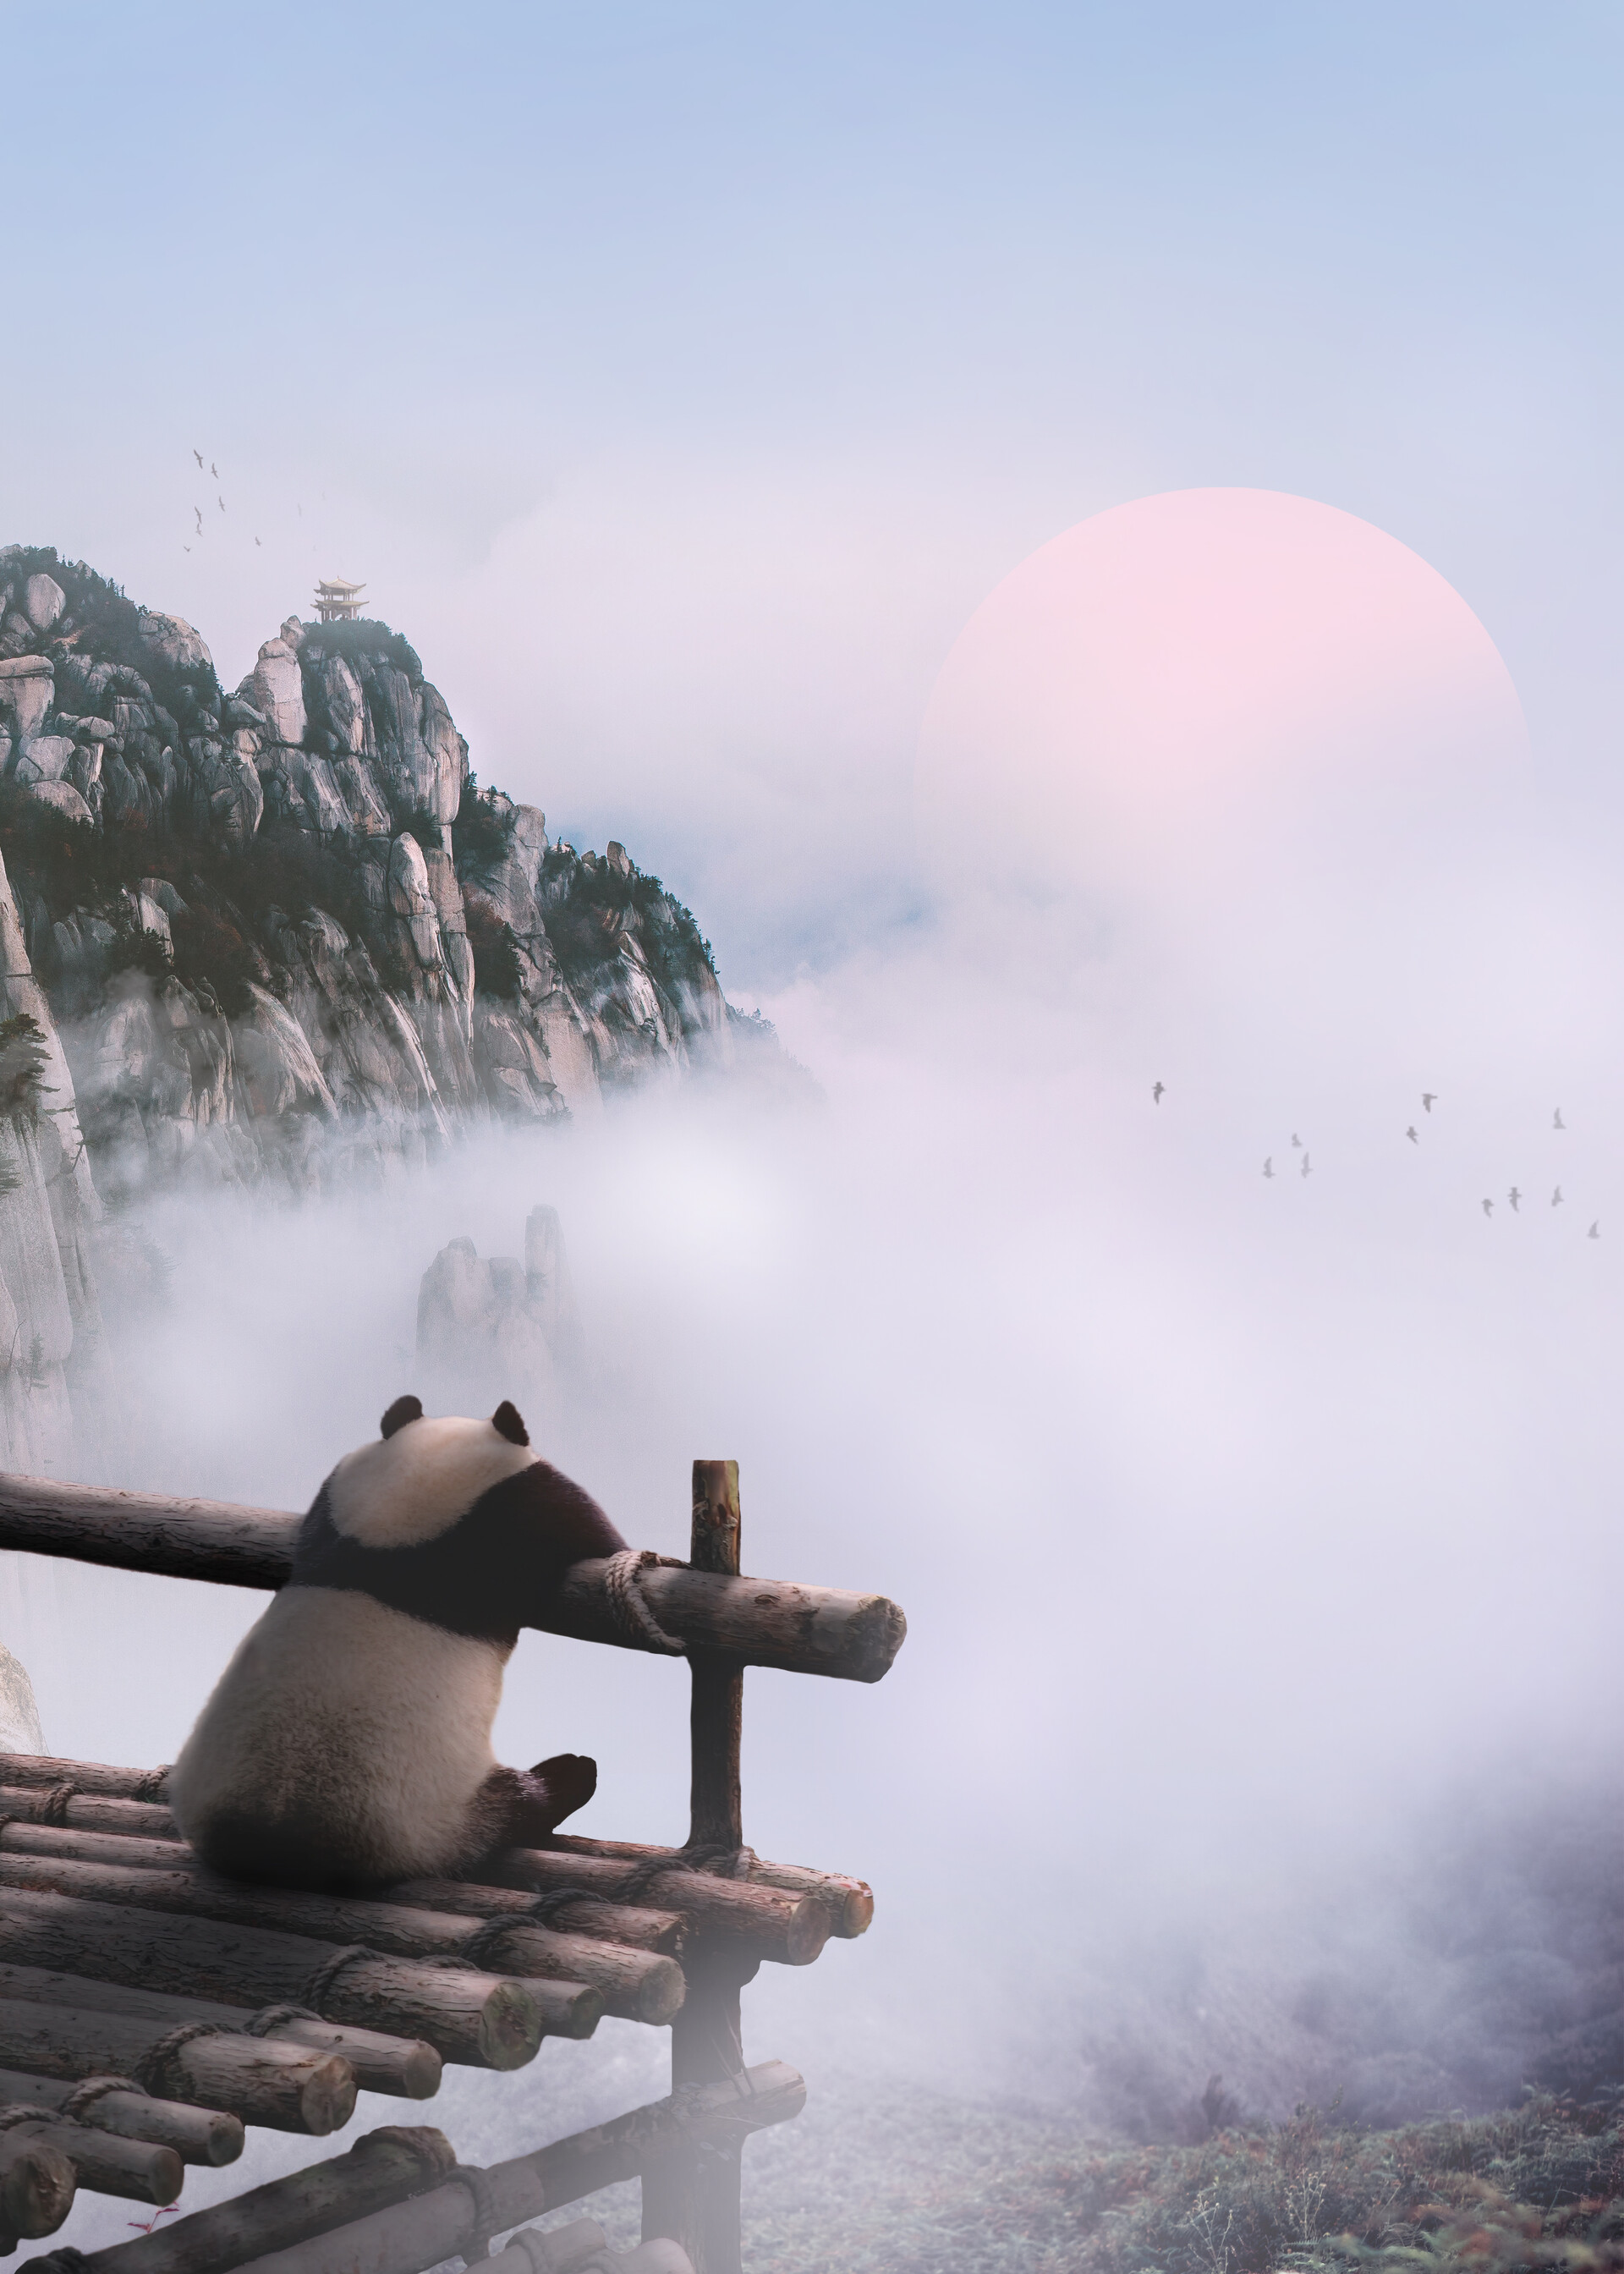 69351 download wallpaper Animals, Panda, Fog, Clouds, Nature, Mountains screensavers and pictures for free